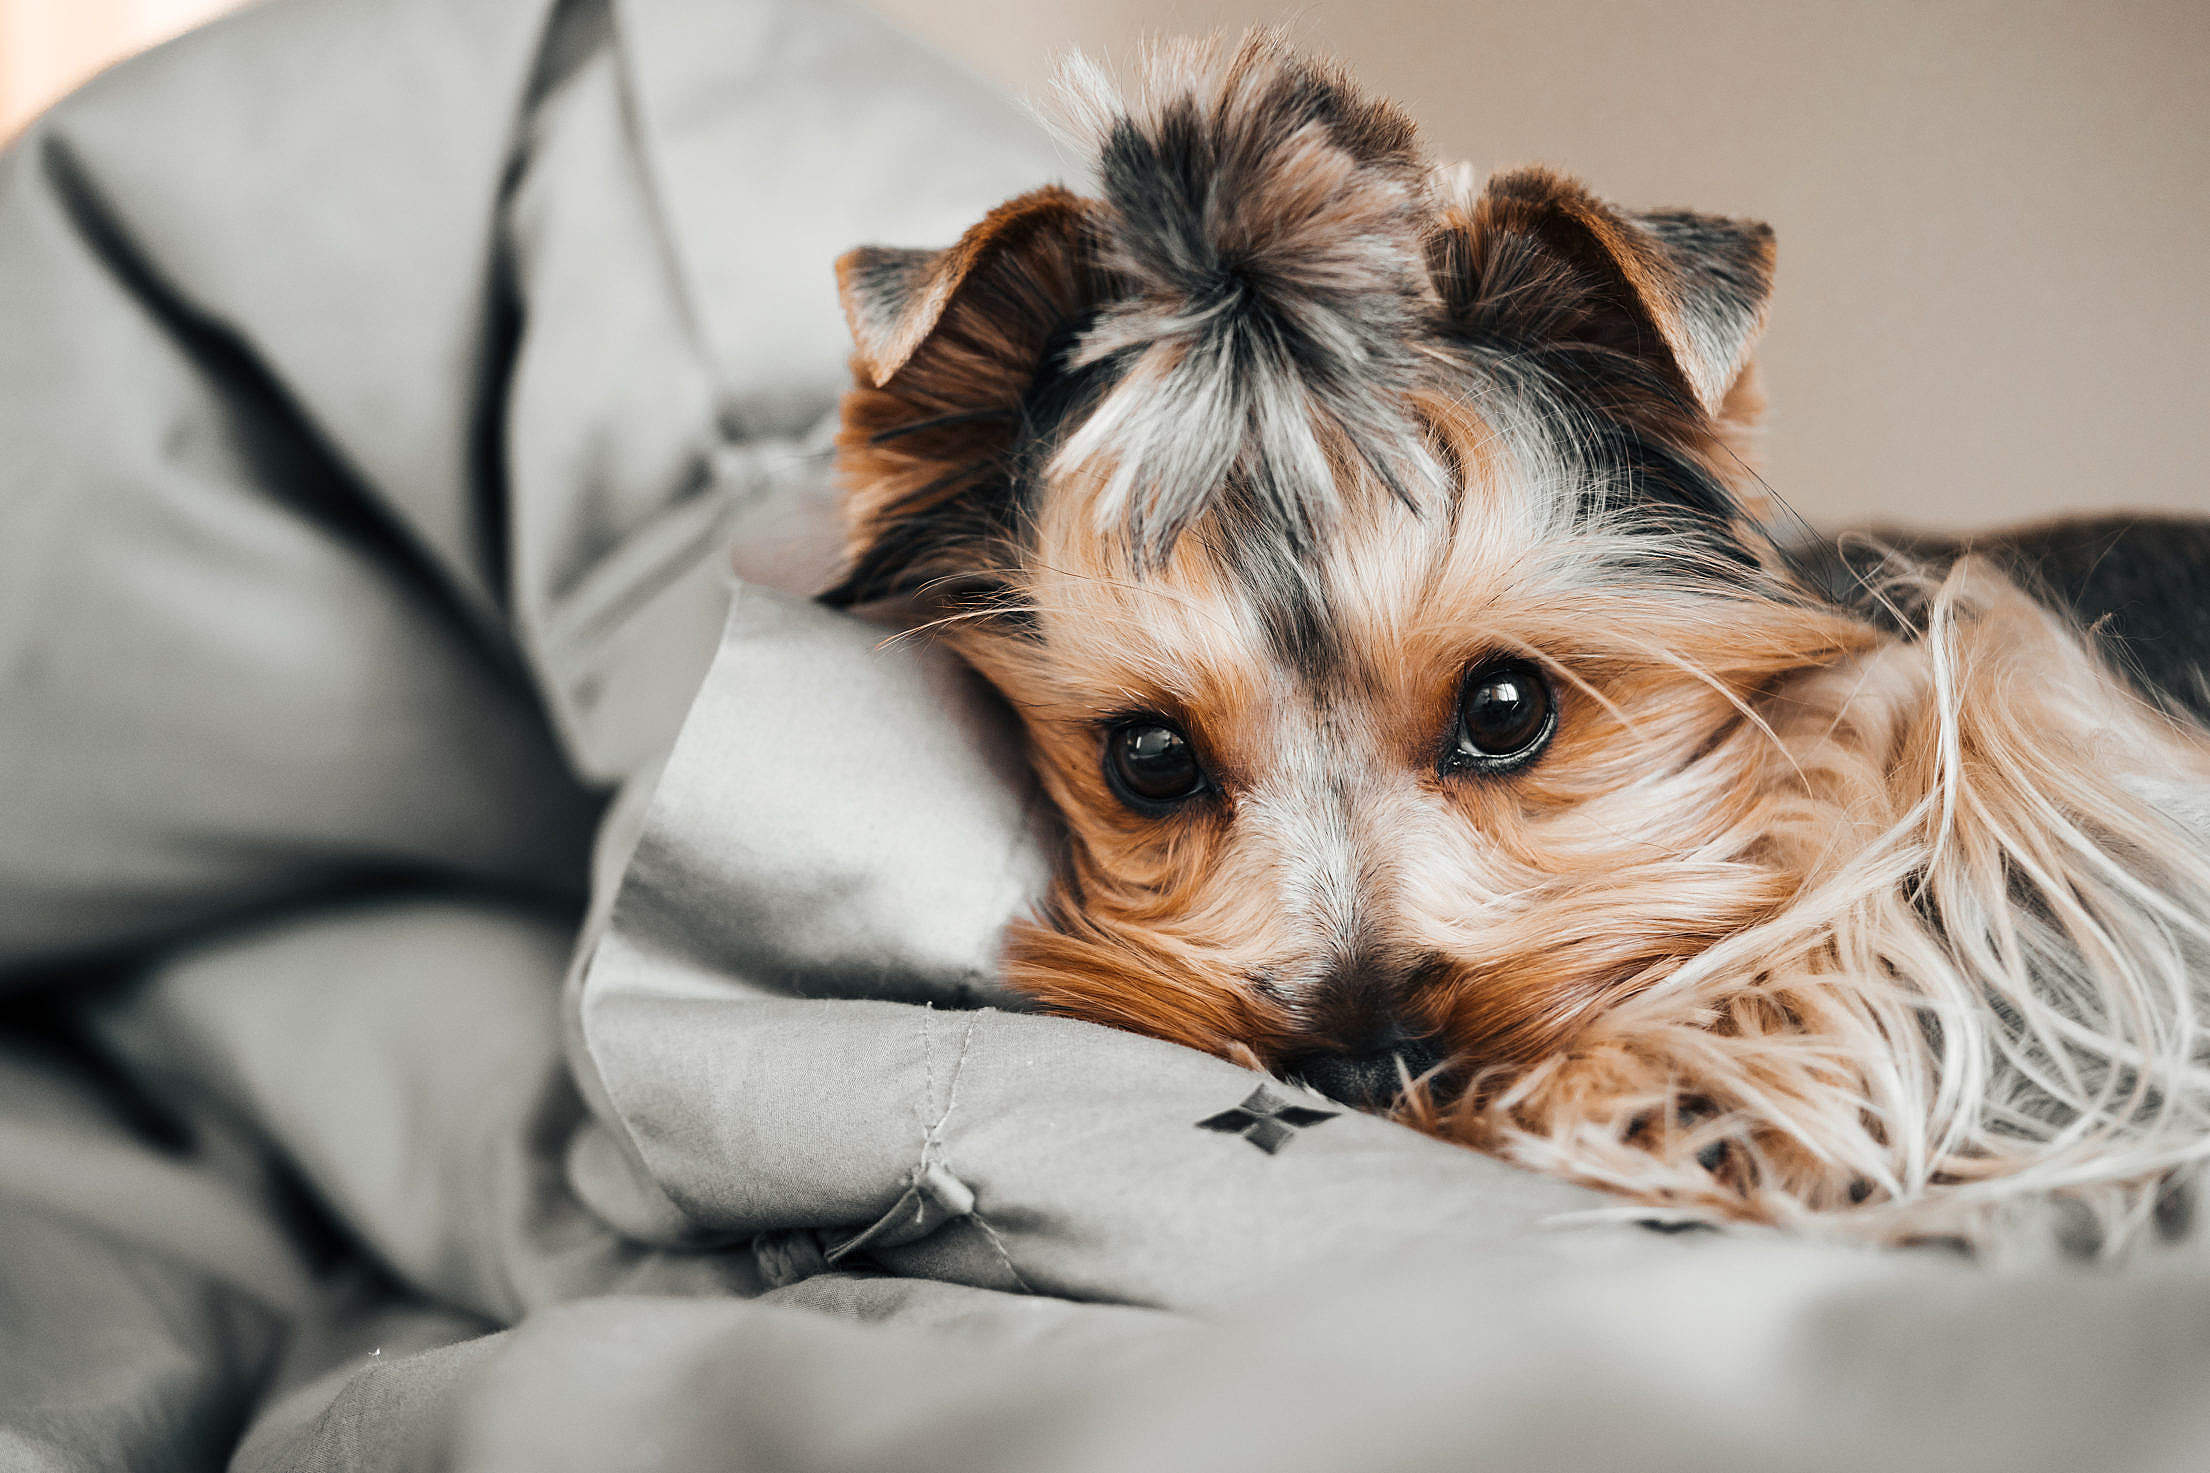 Little Jessie The Dog Resting in Bed Free Stock Photo